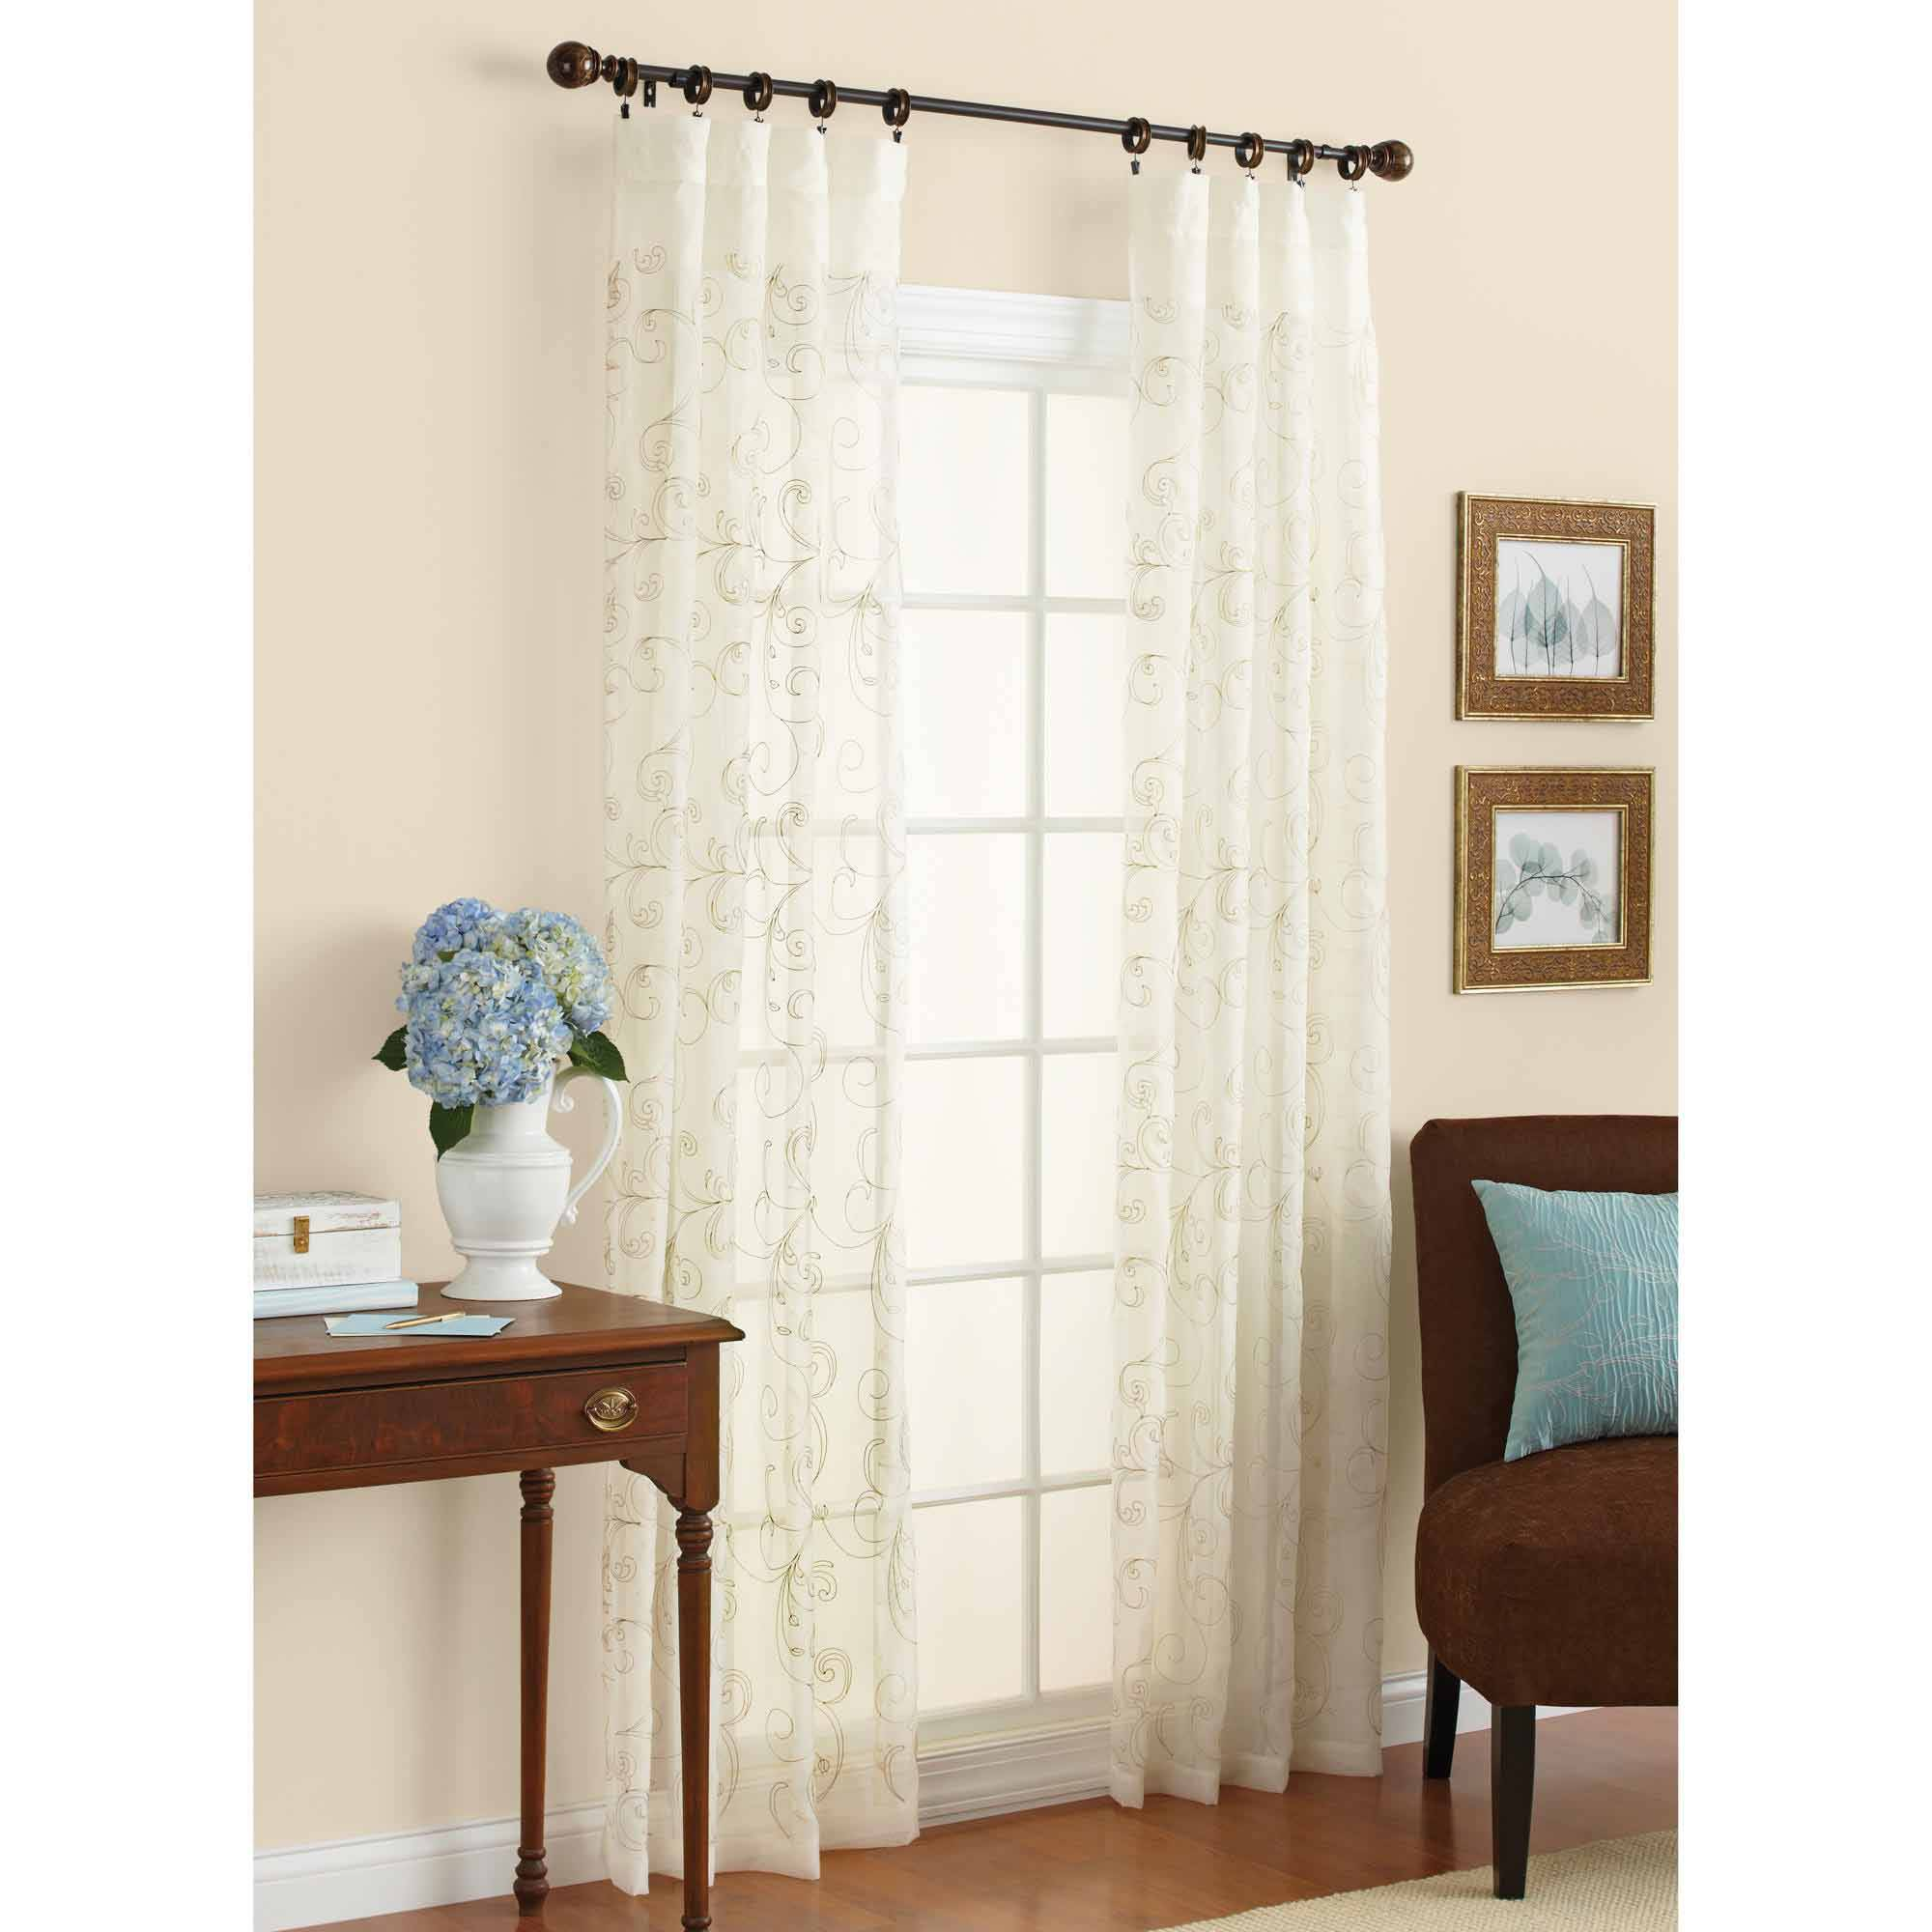 Silk Embroidered Curtains | Neutral Drapes | Embroidered Curtains